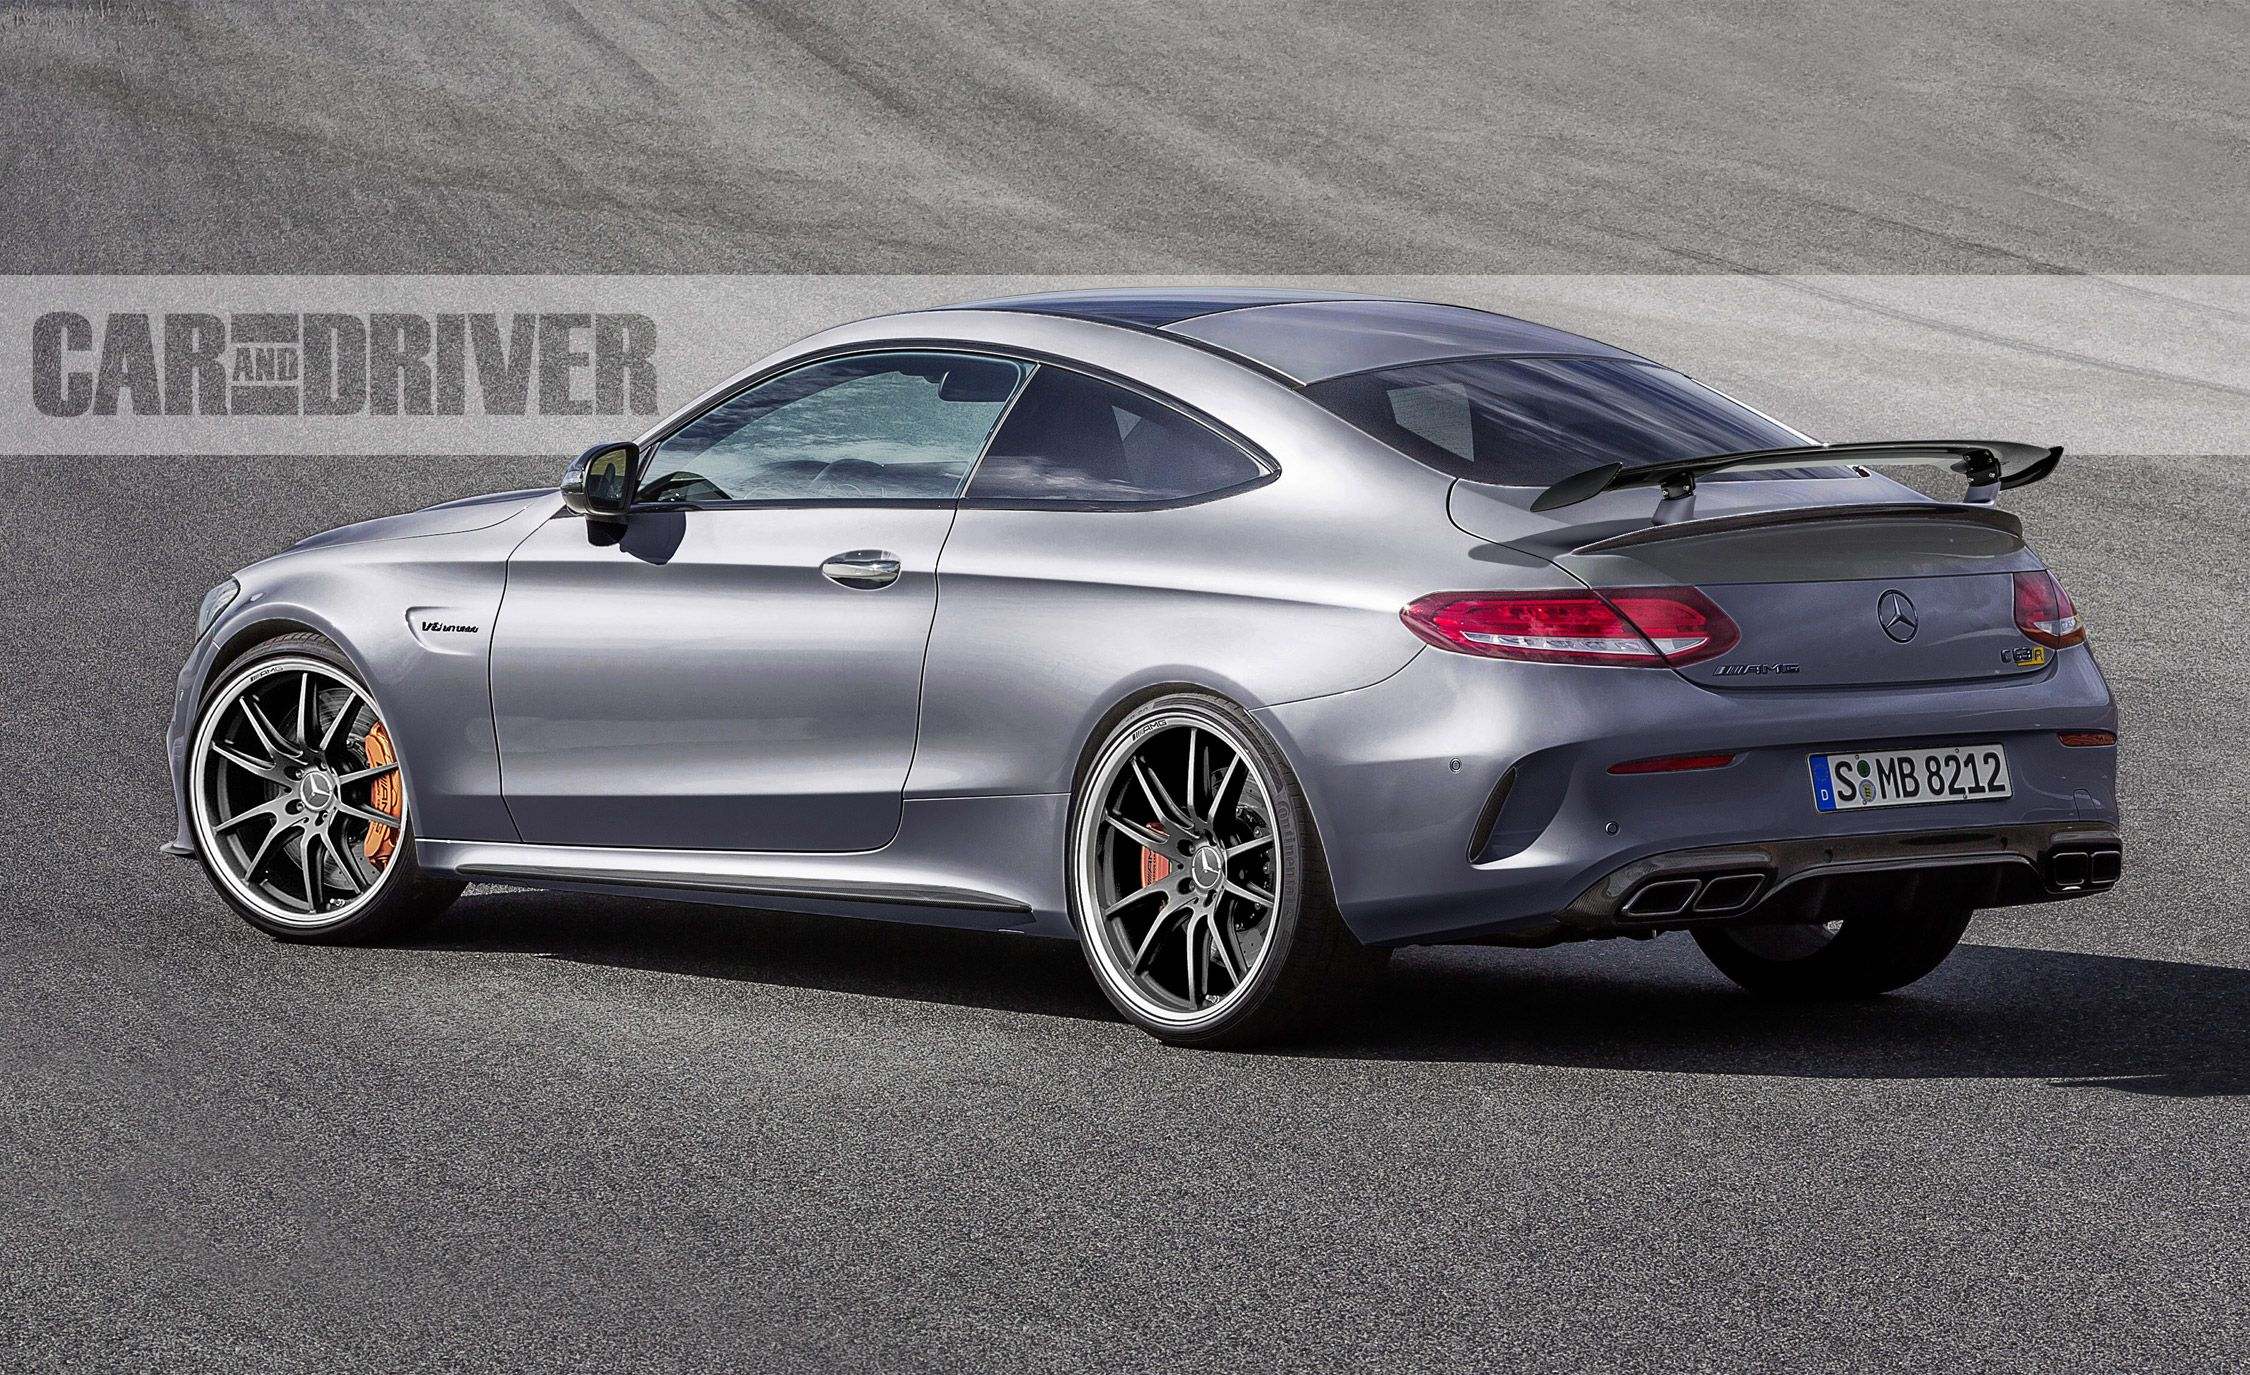 2019 Mercedes-AMG C63 R: The Ultimate Track-Focused C-class